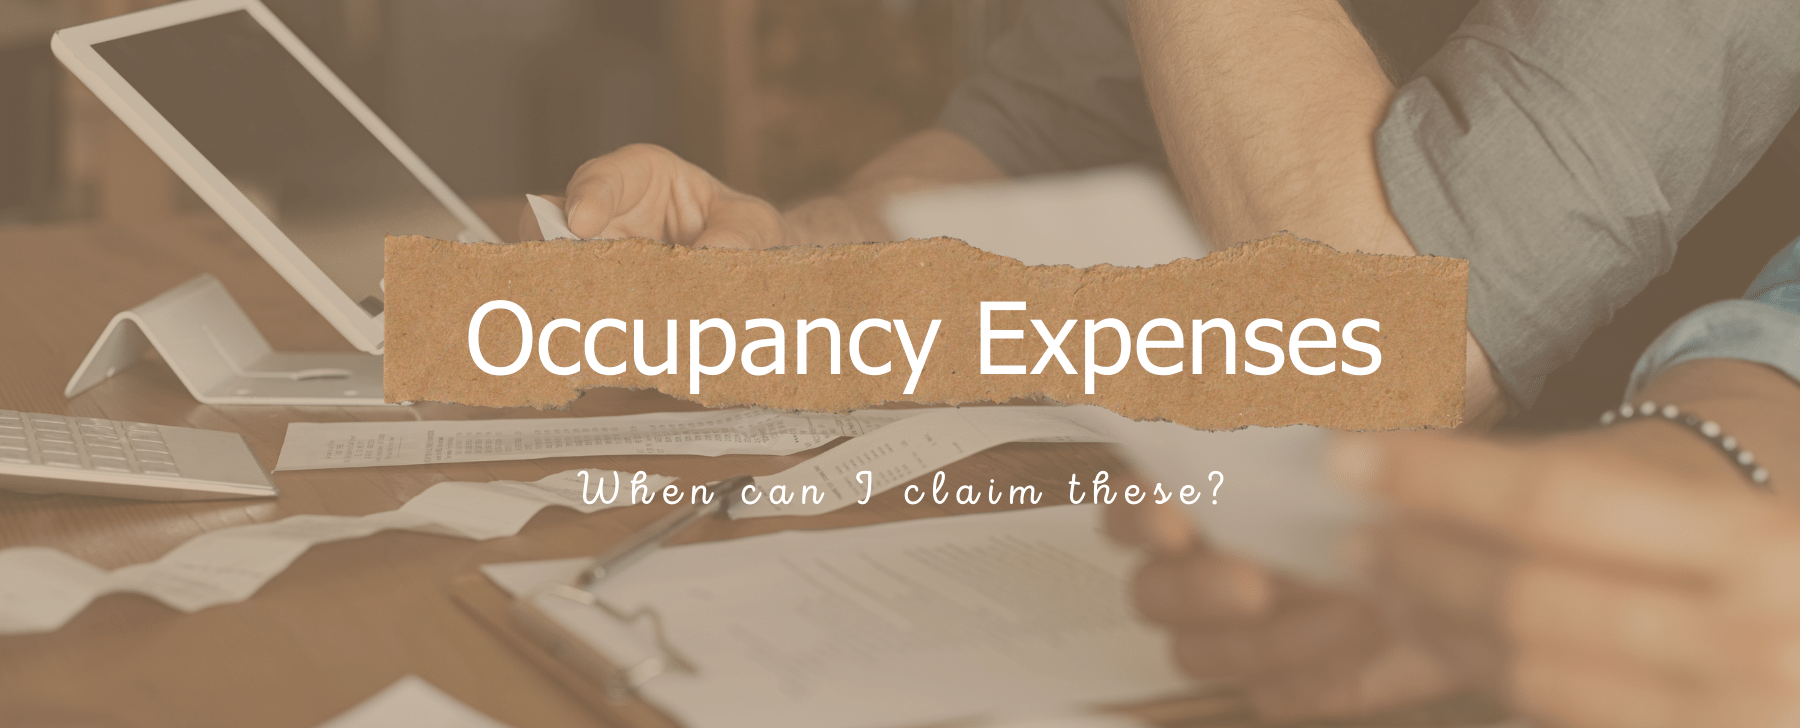 occupancy expenses when can i claim these? background image of expenses on a table with hands sorting through them.